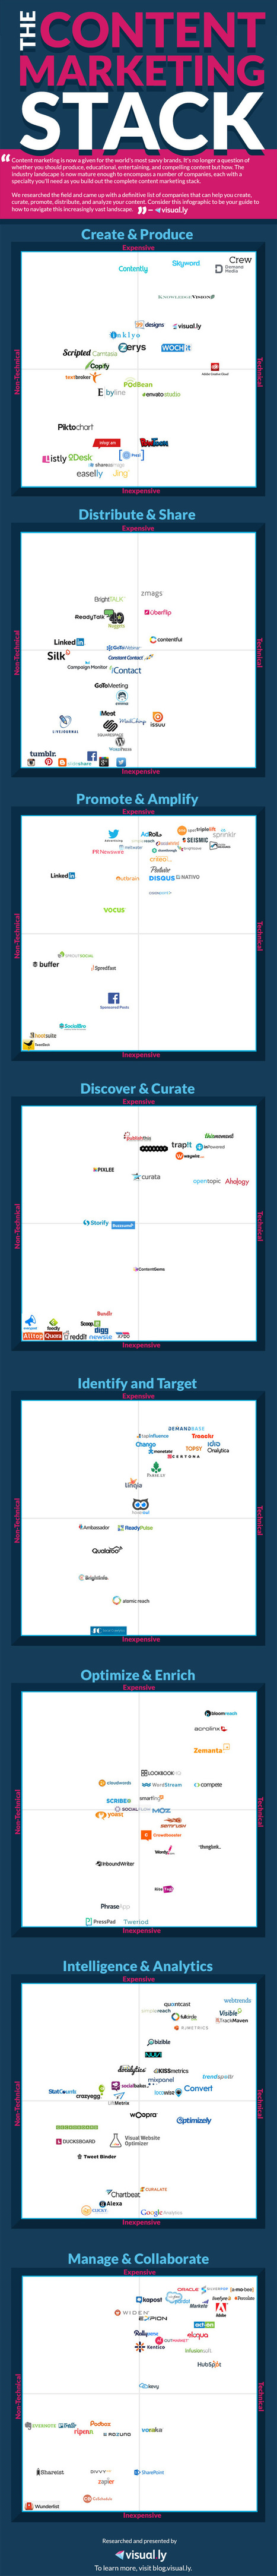 Building The Content Marketing Stack 2015 | Visually Blog | Politically Incorrect | Scoop.it